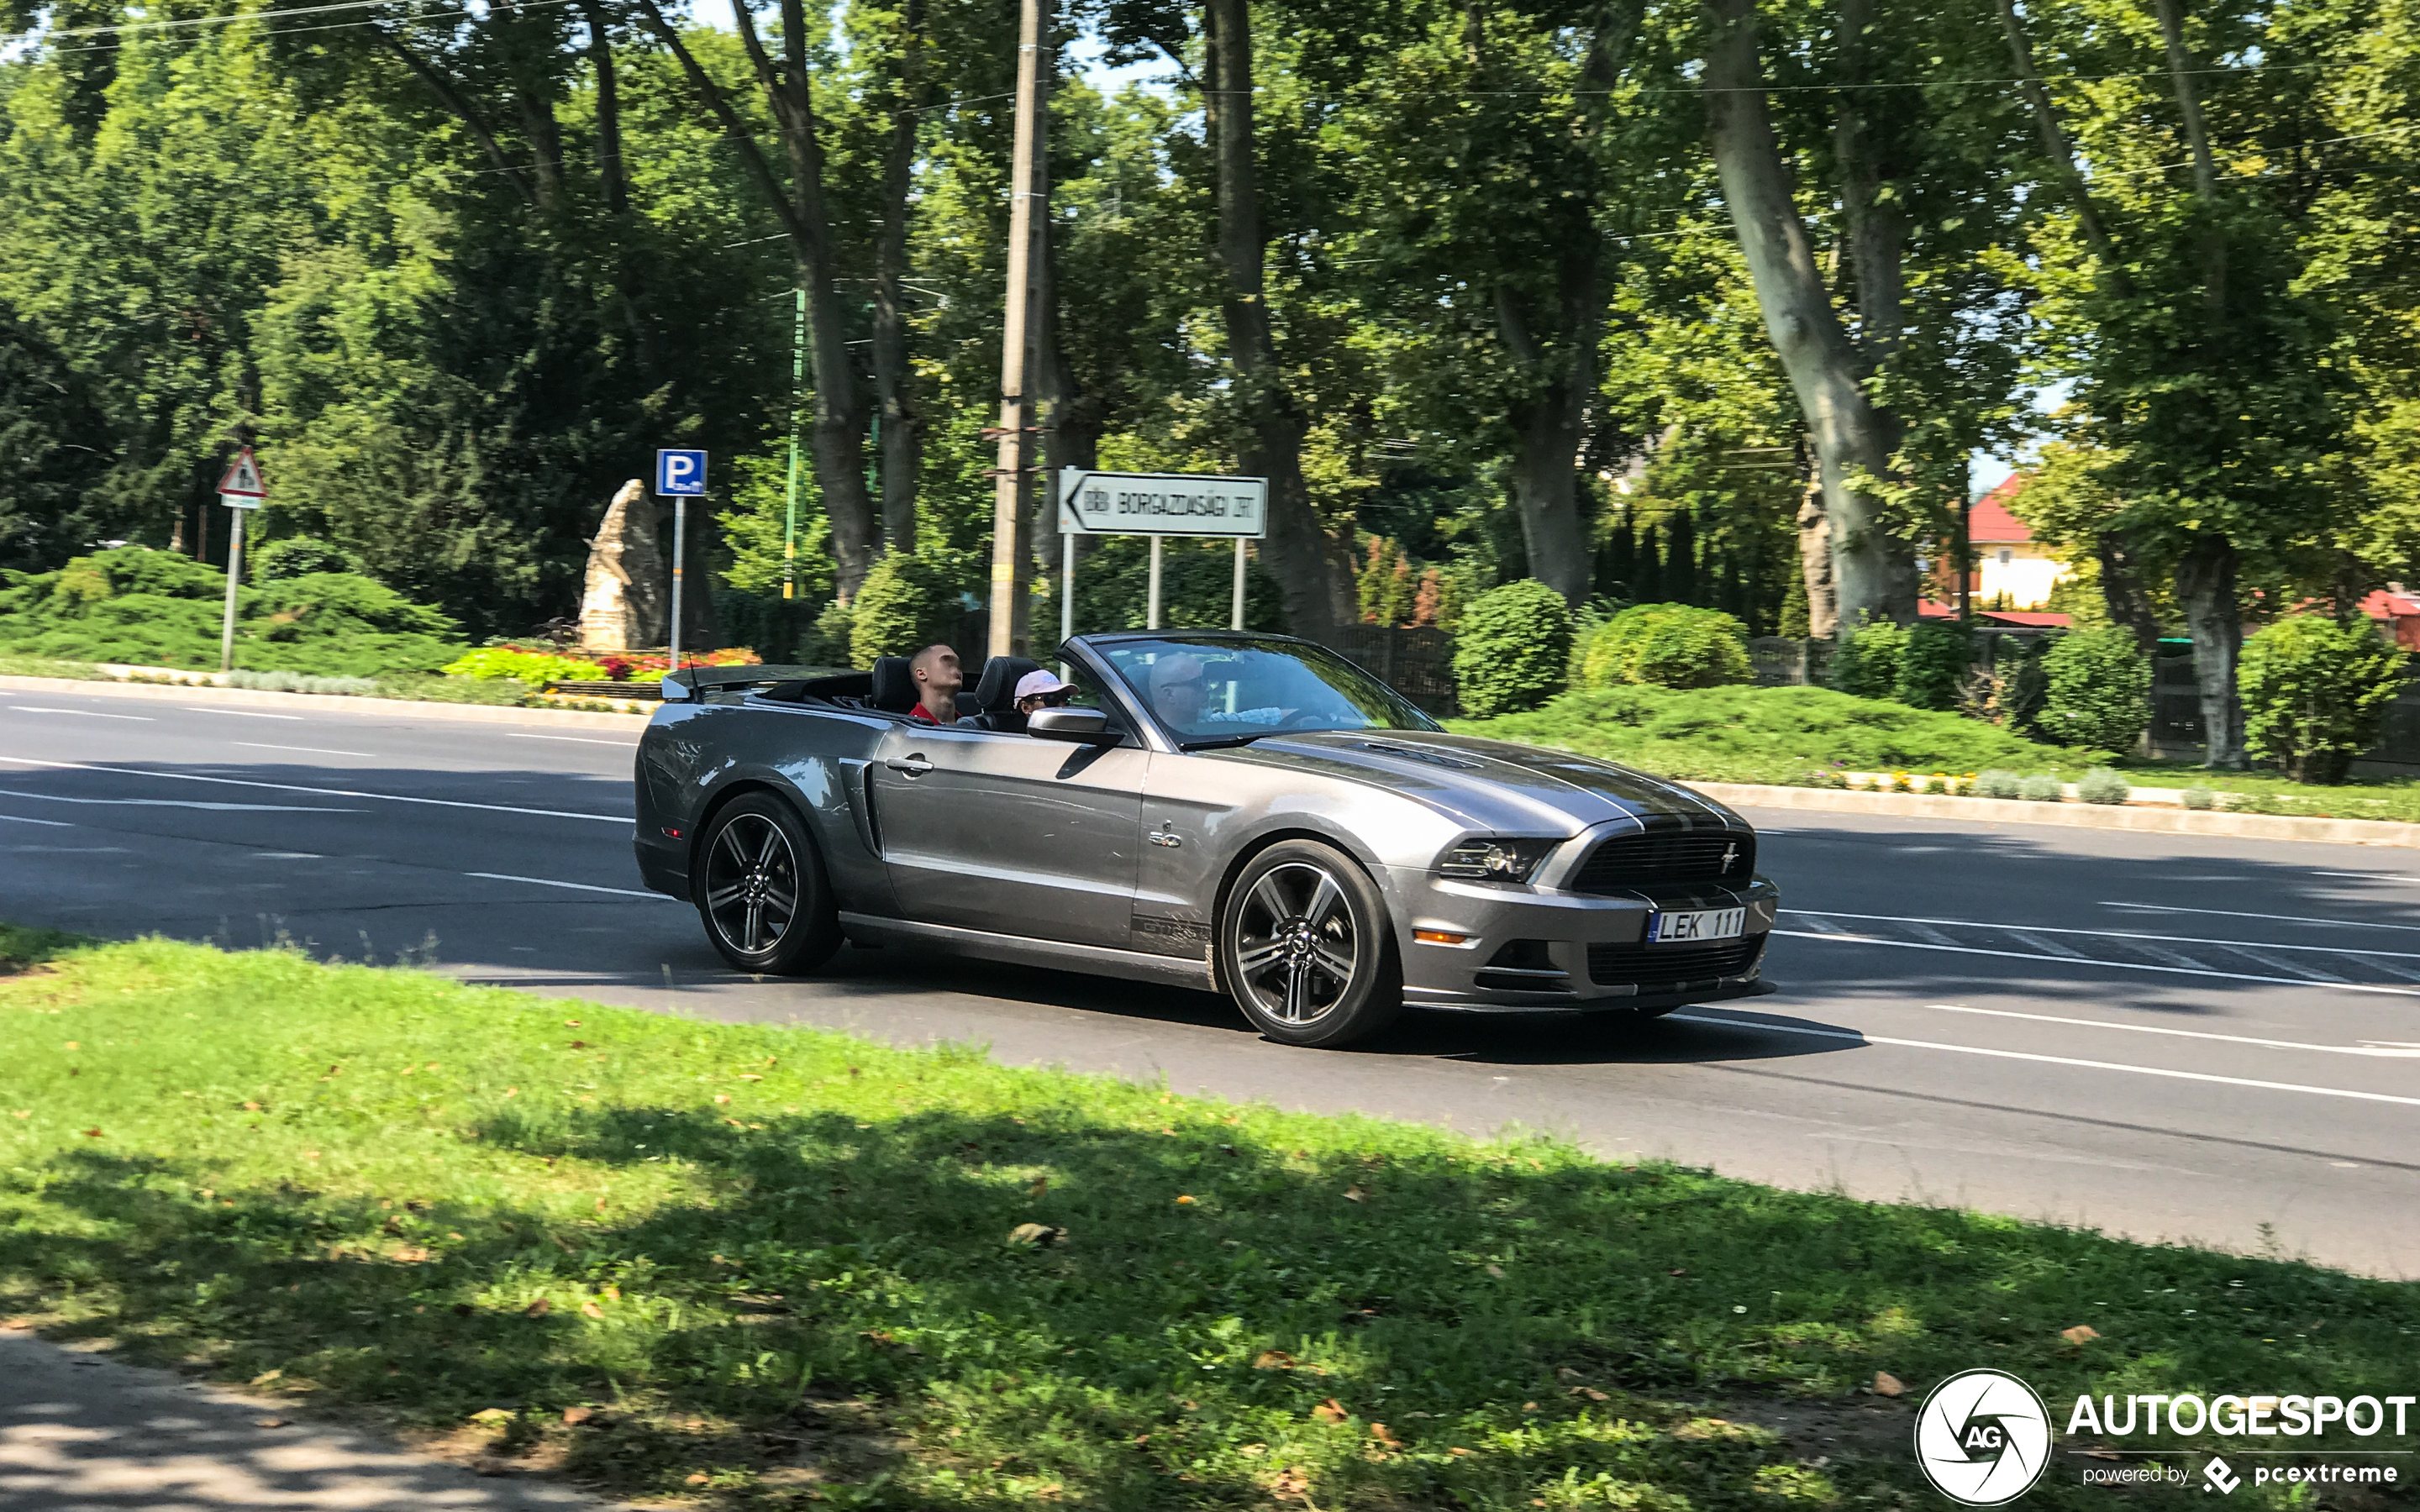 Ford Mustang GT California Special Convertible 2013